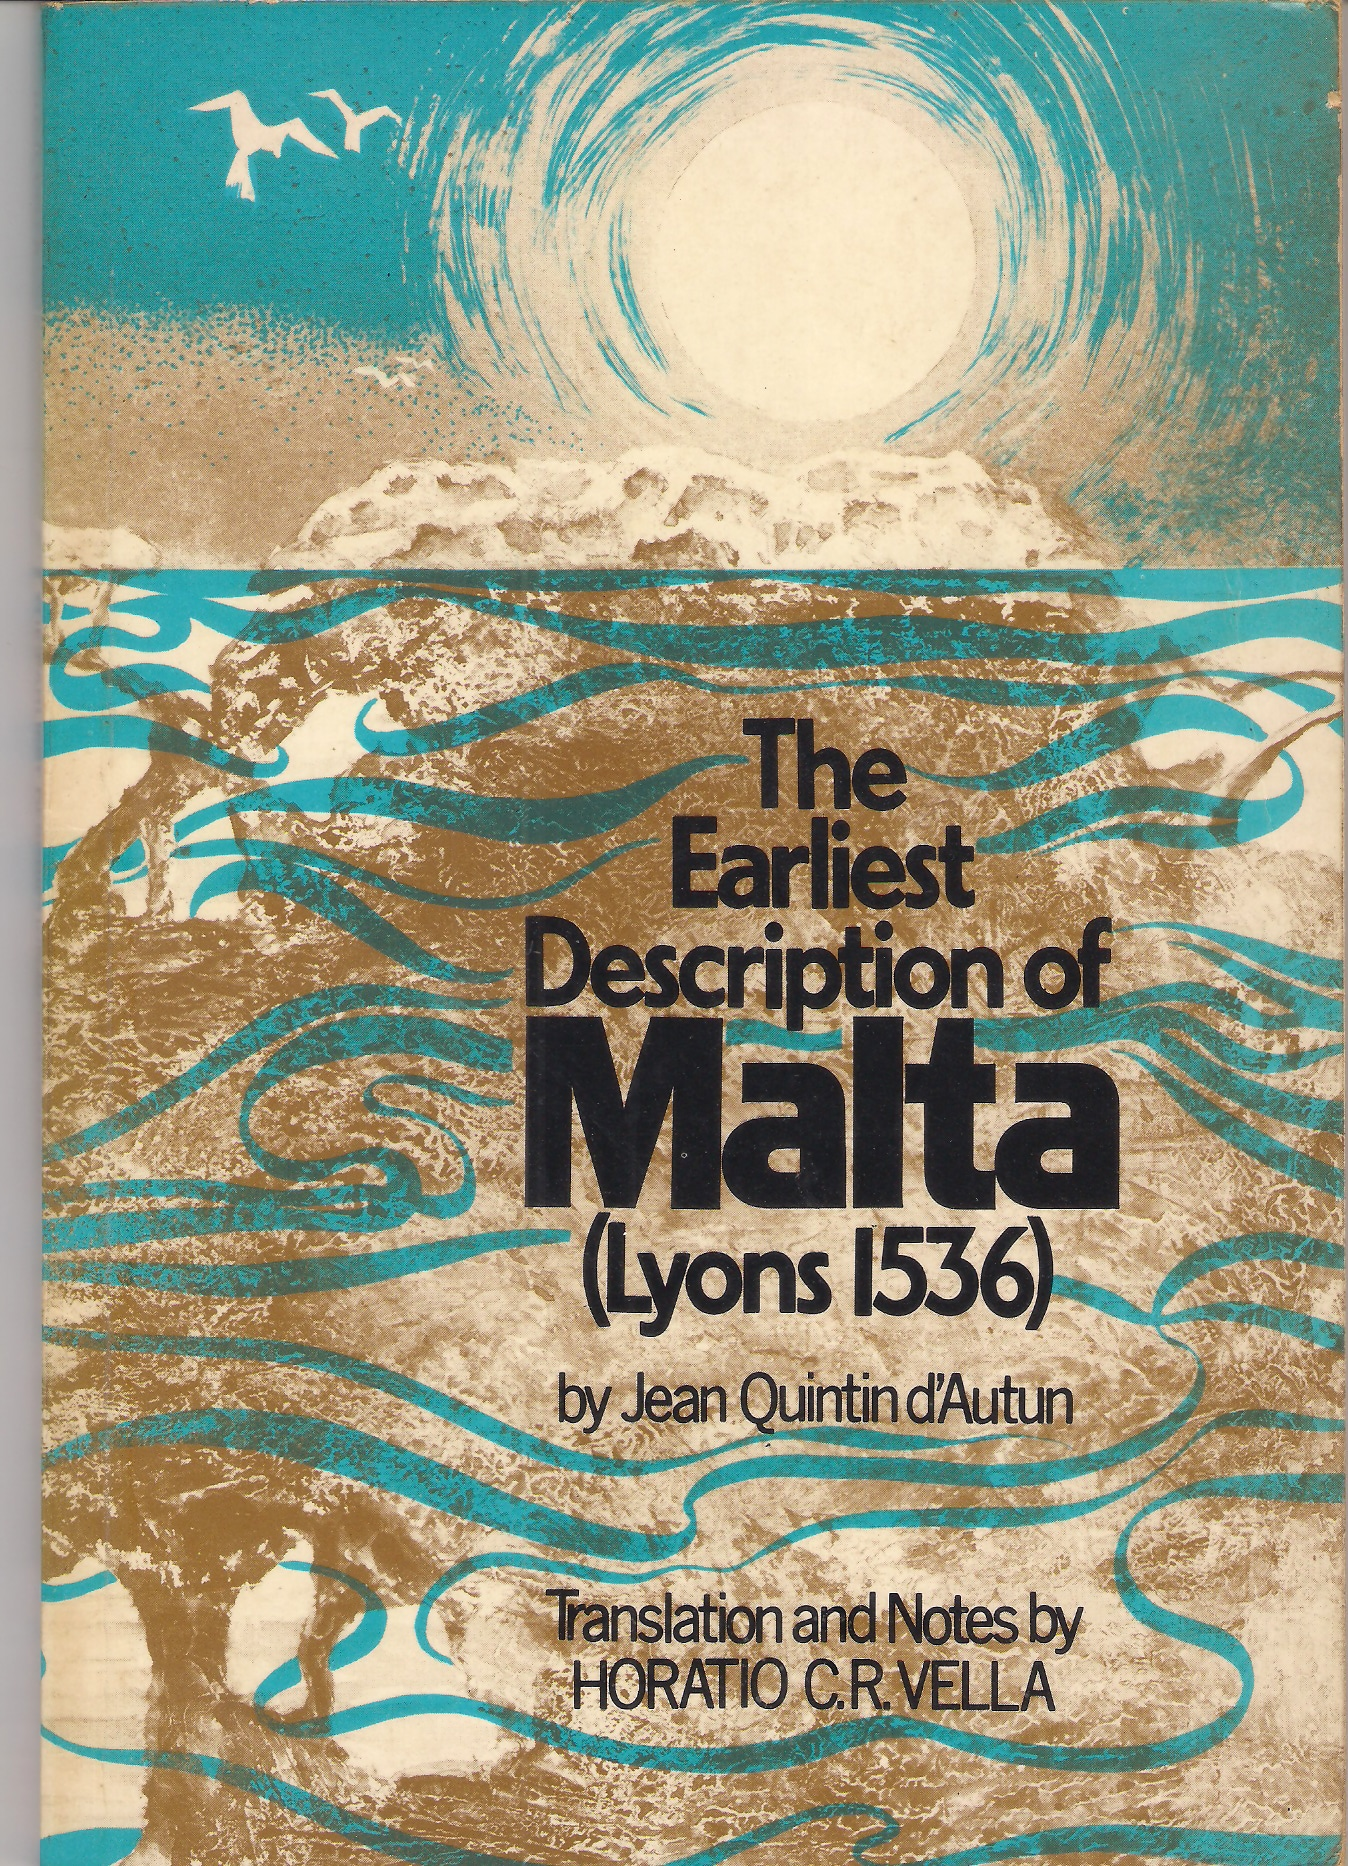 The Earliest Description of Malta (Lyons 1536)